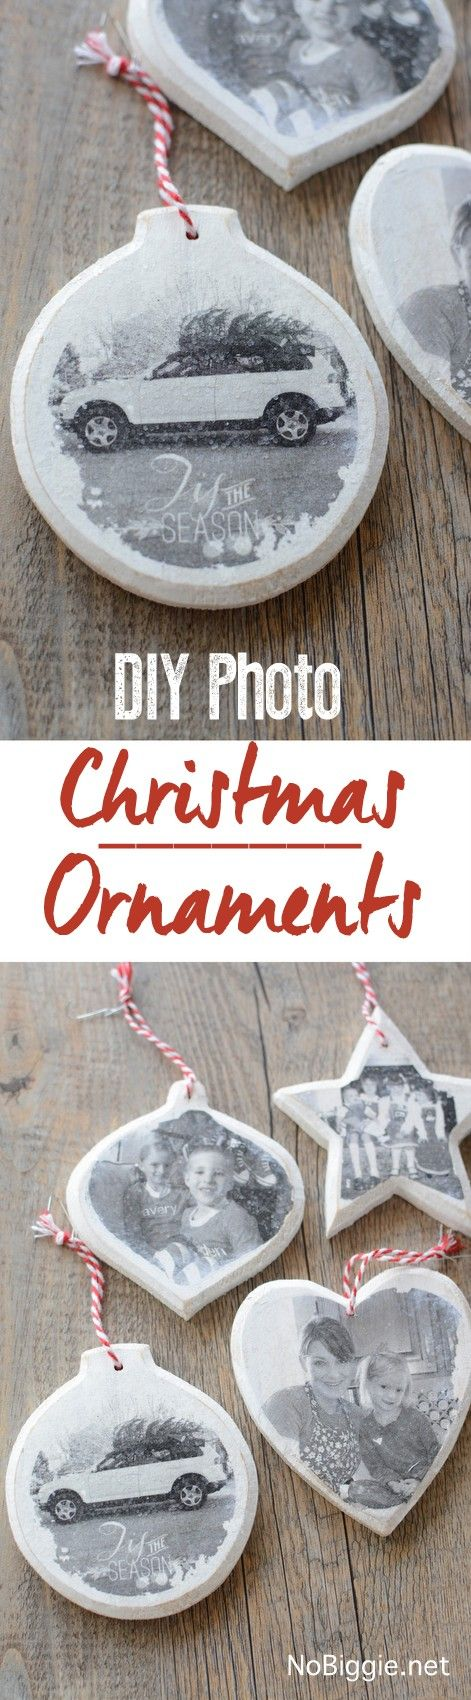 Transfer Cherished Photos Onto Wood Ornaments.